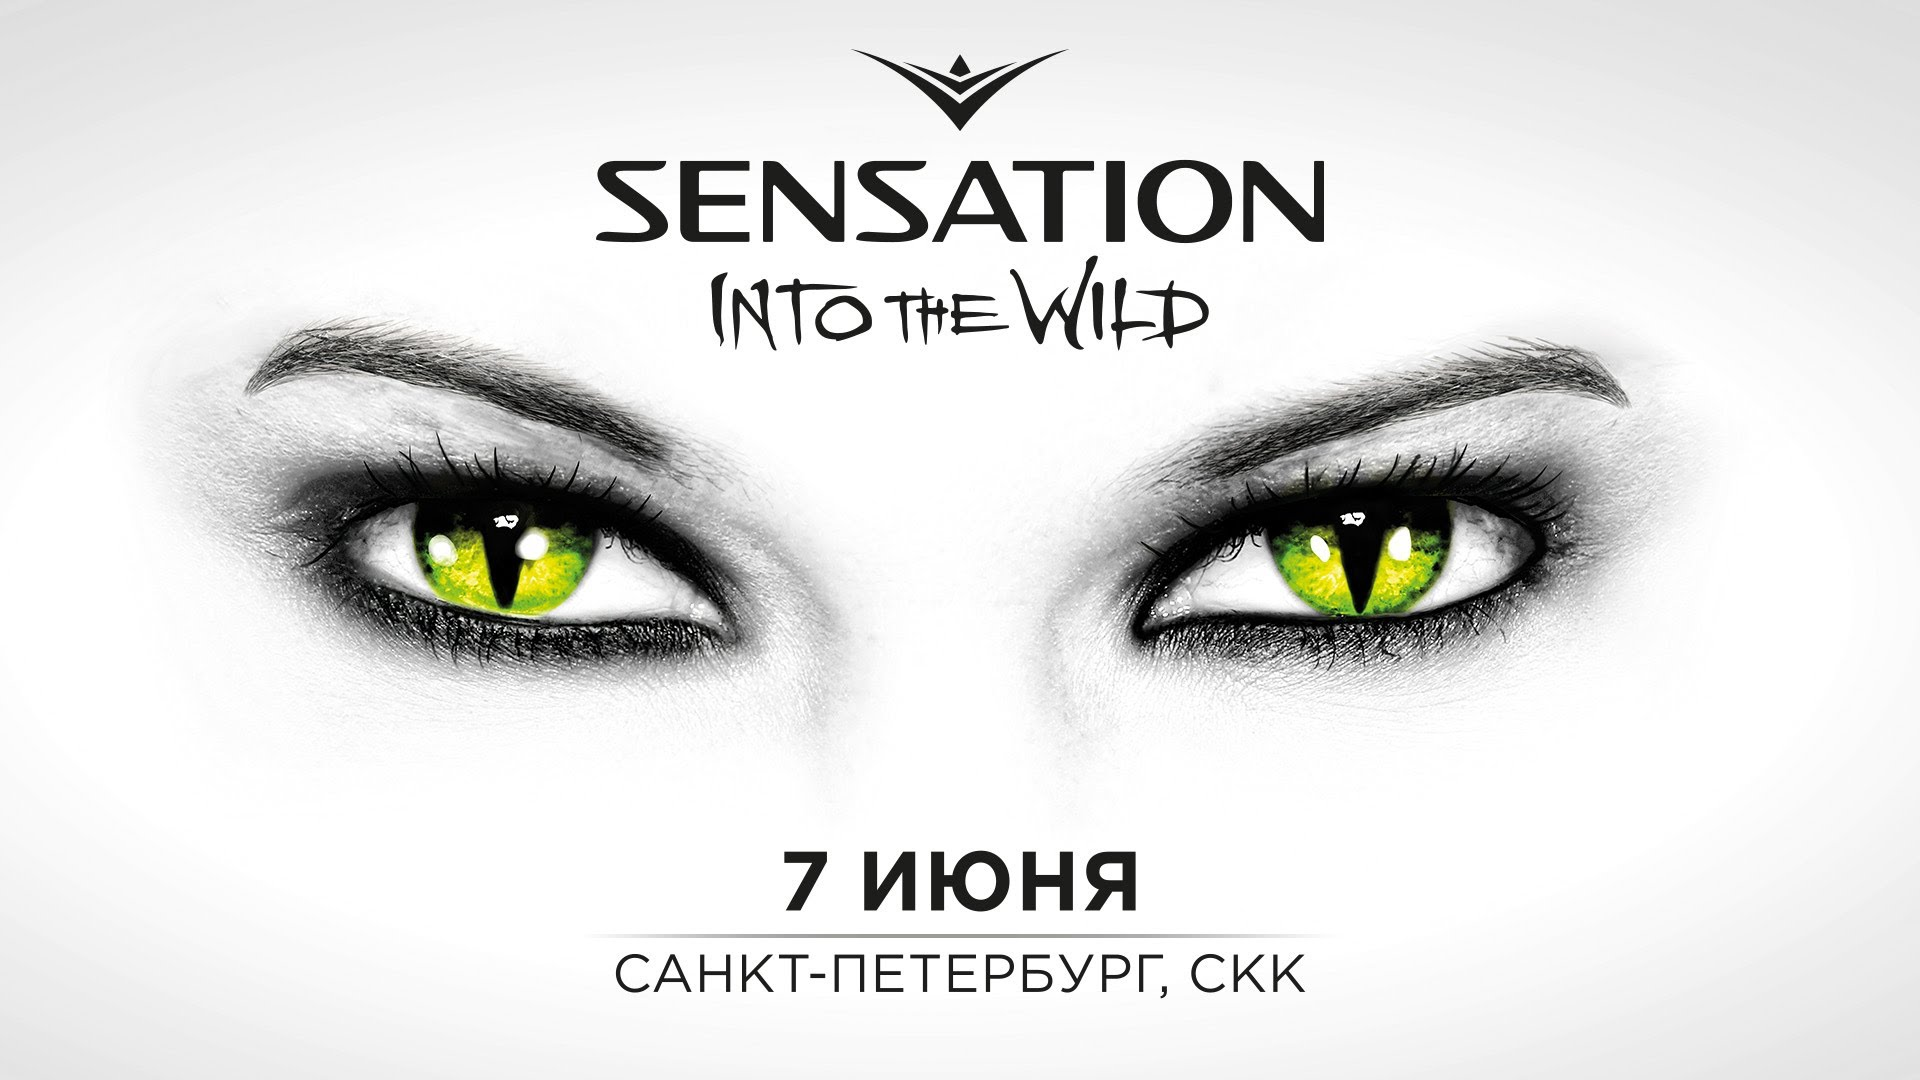 download → Nicky Romero, Martin Garrix, Dyro, Sick Individuals, Matisse & Sadko, Mr White - live at Sensation, Russia - 07-Jun-2014